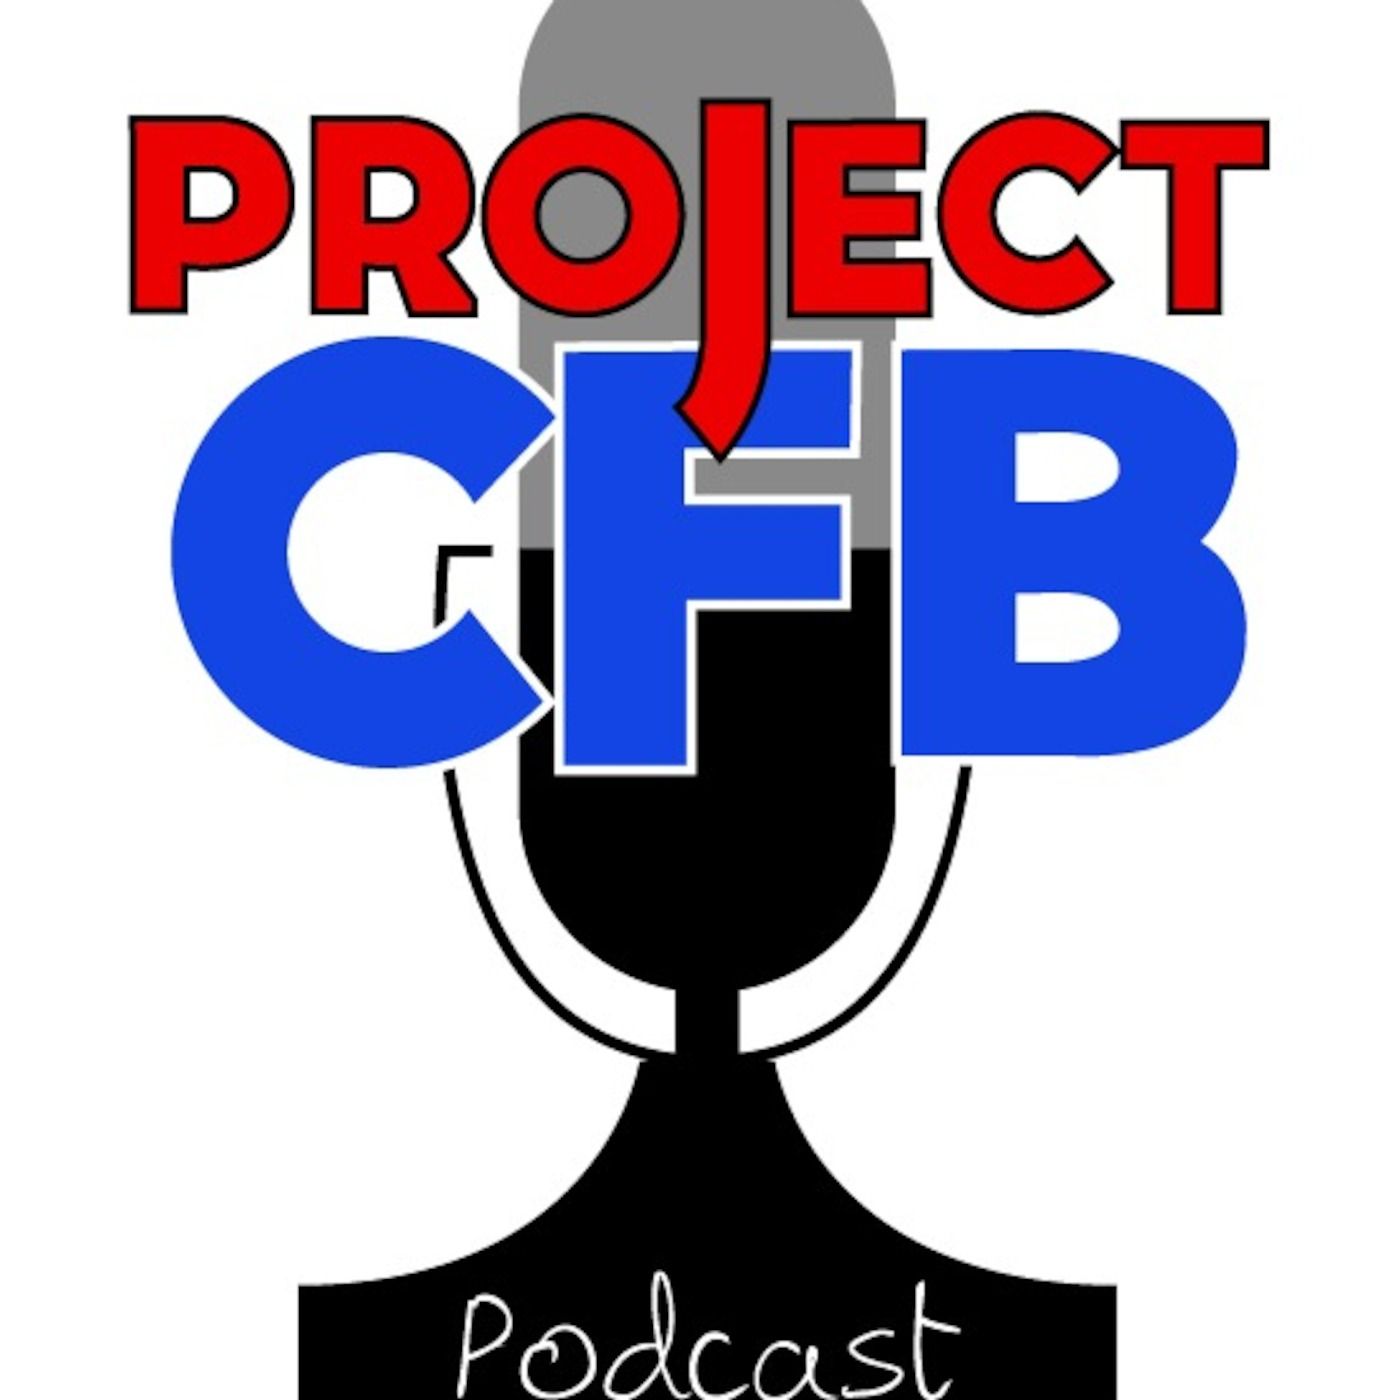 Project CFB Podcast